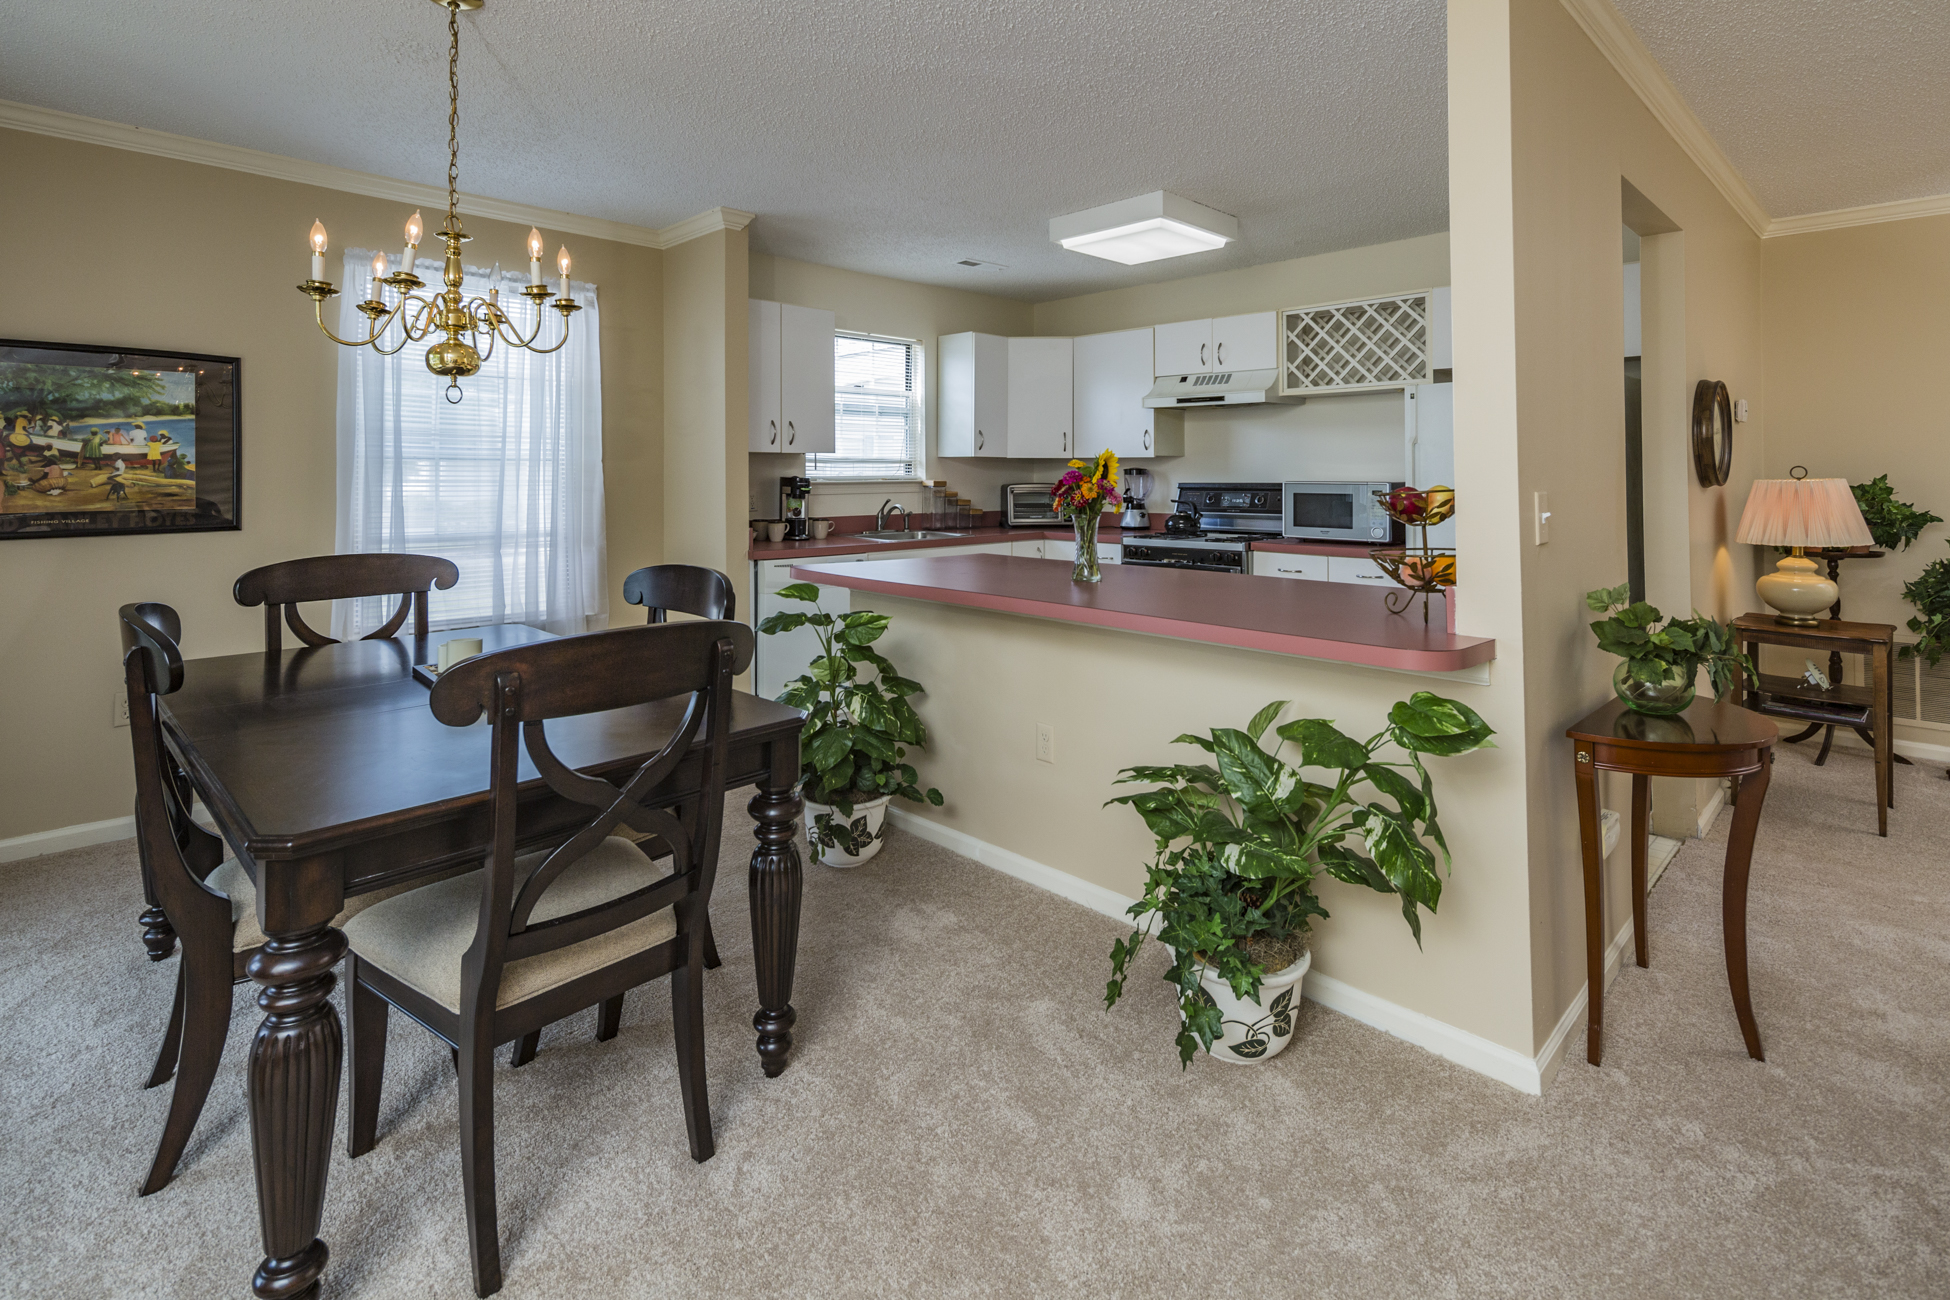 Additional photo for property listing at Effortless, One-Level Living in Eagles Chase - Lawrence Township 816 Roundtree Place Lawrenceville, Nueva Jersey 08648 Estados Unidos